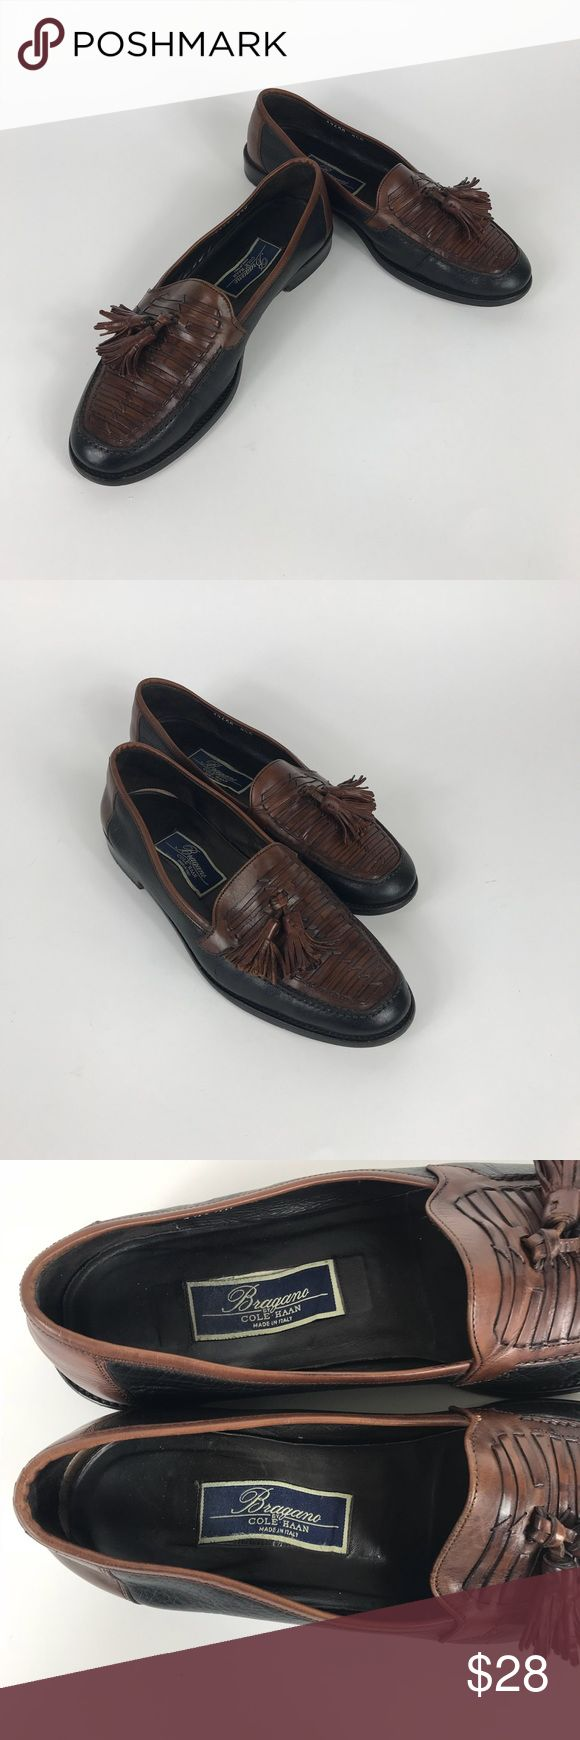 Men's Cole Haan Bragano Italy Weave loafer 8.5 D Pre owned Cole Haan Bragano Tassel Loafers! Size 8 1/2D Two tone Brown and Black. These have been loved for a while but it's time to let someone else enjoy them. The inside sole/foot bed is coming loose so we are letting these go cheap! You can this in the last pic. Get these high end Cole Haan's at a fraction of the new price.   Thanks for looking and please be sure to check out our other Cole Haan dress shoes! Cole Haan Shoes Loafers…